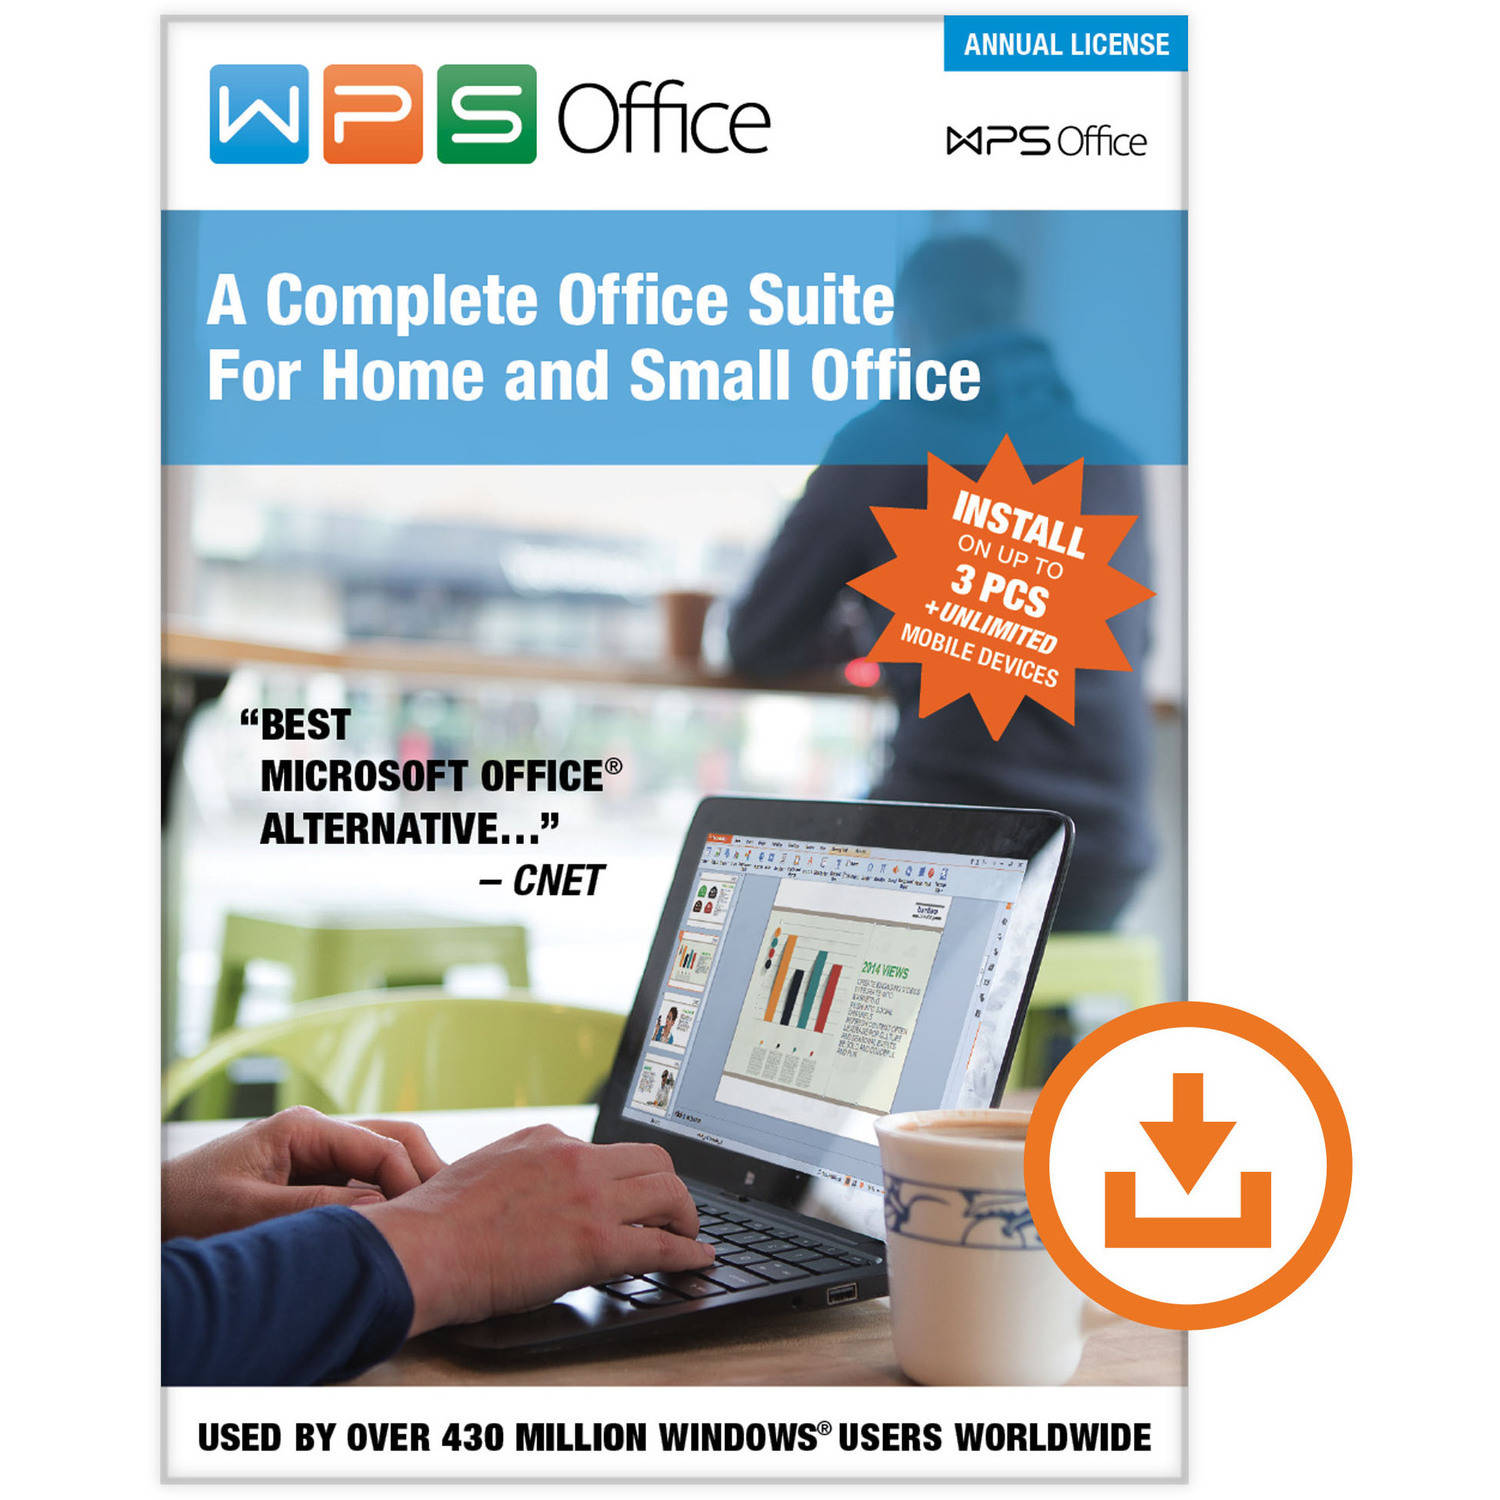 WPS Office: Annual Subscription (3 PCs/Unlimited Mobile Installs) (Digital Code)